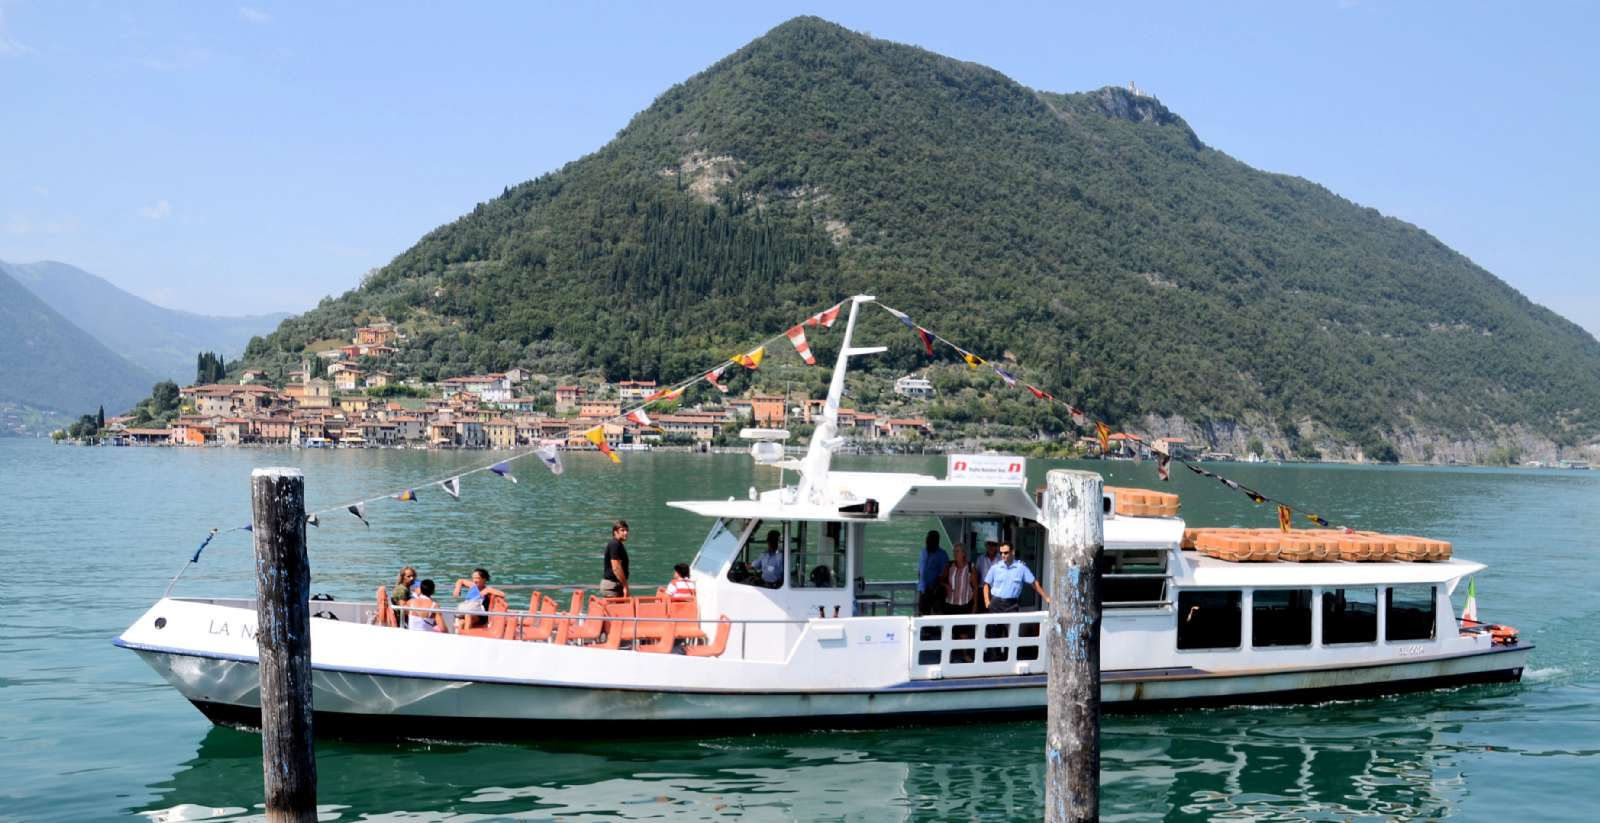 The ferry crossing between Monte Isola and Sulzano on Iseo's width